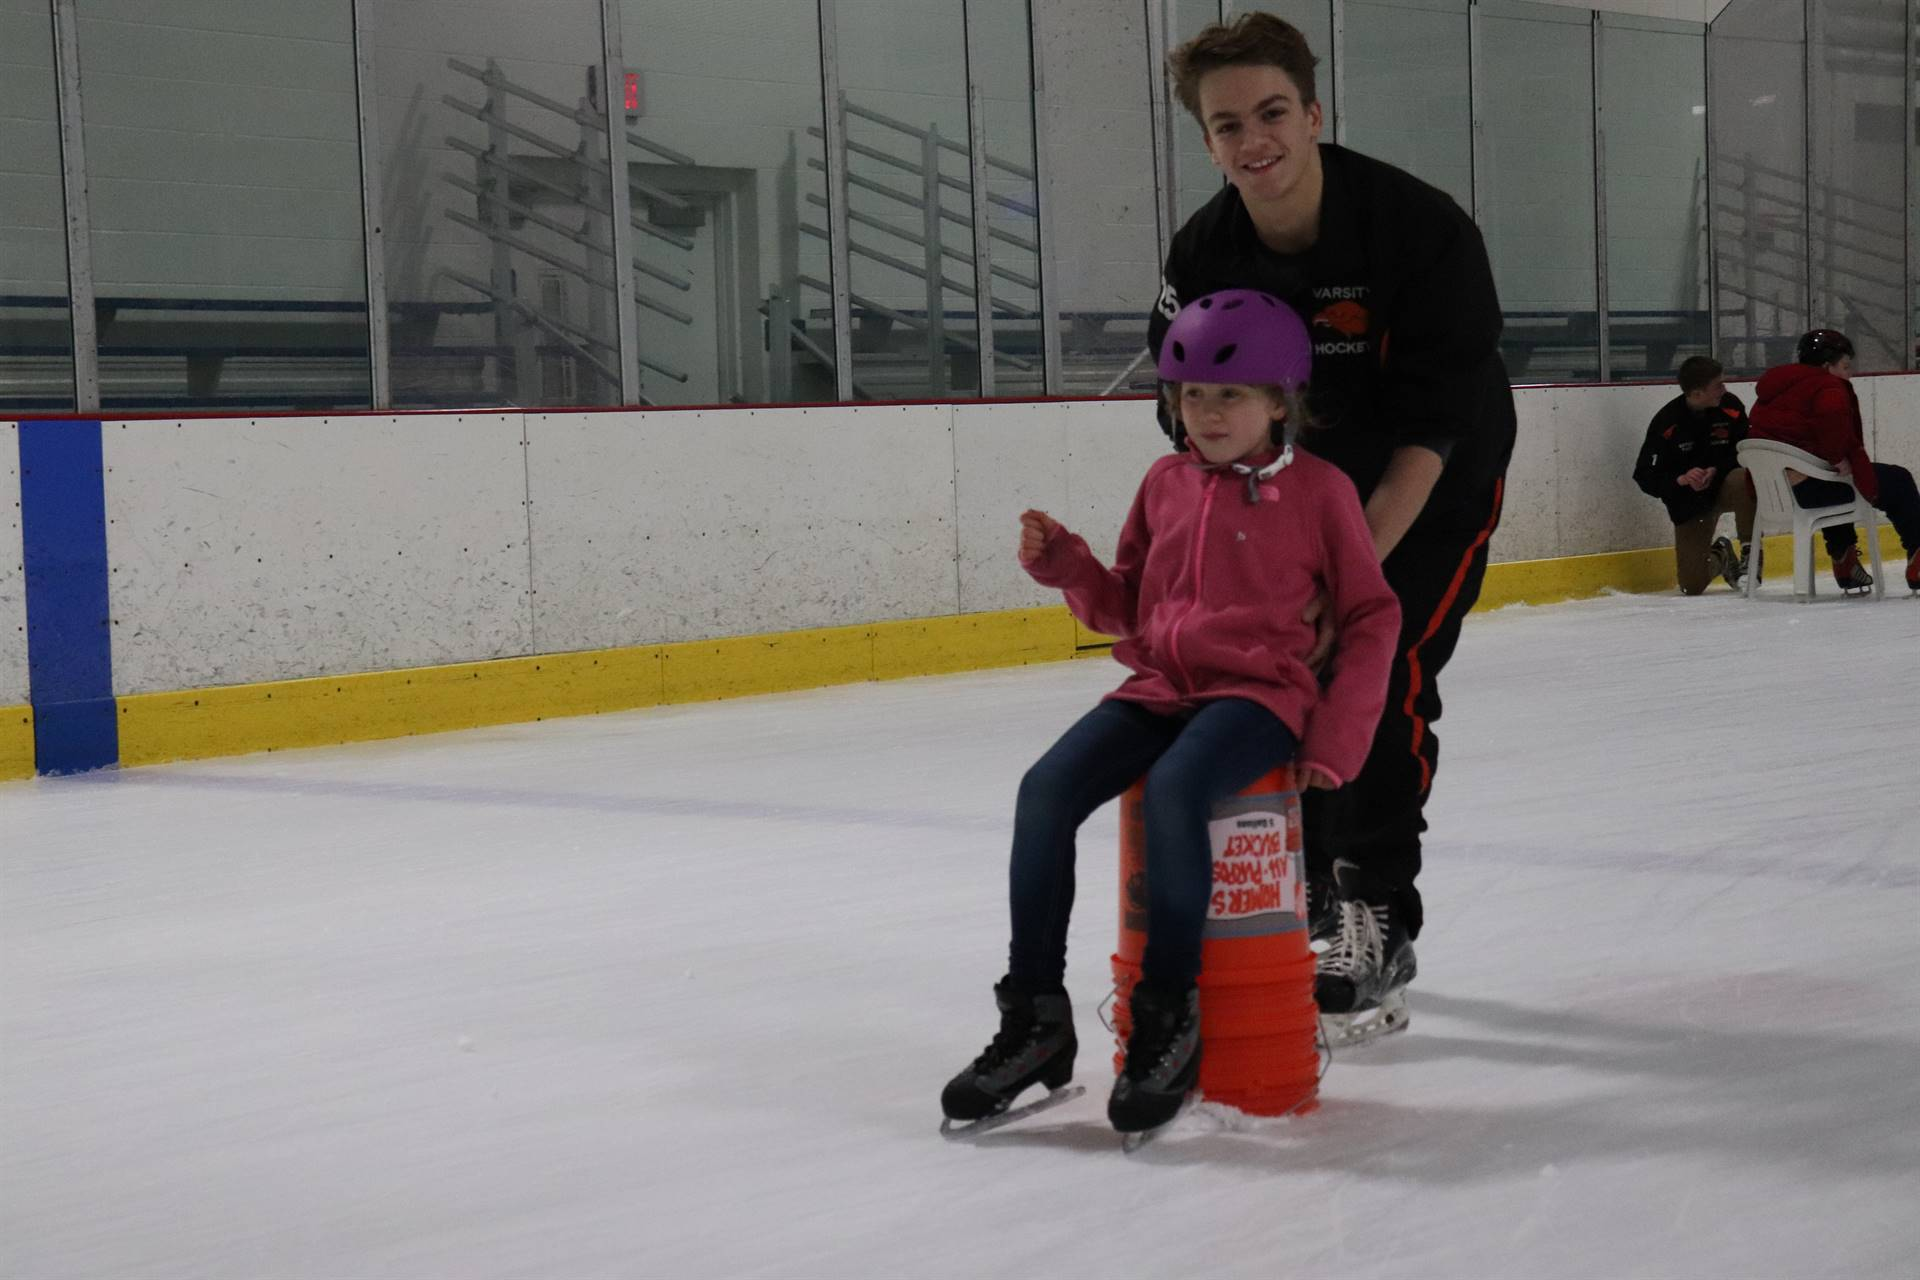 Hockey player pushing a student around the ice on a chair